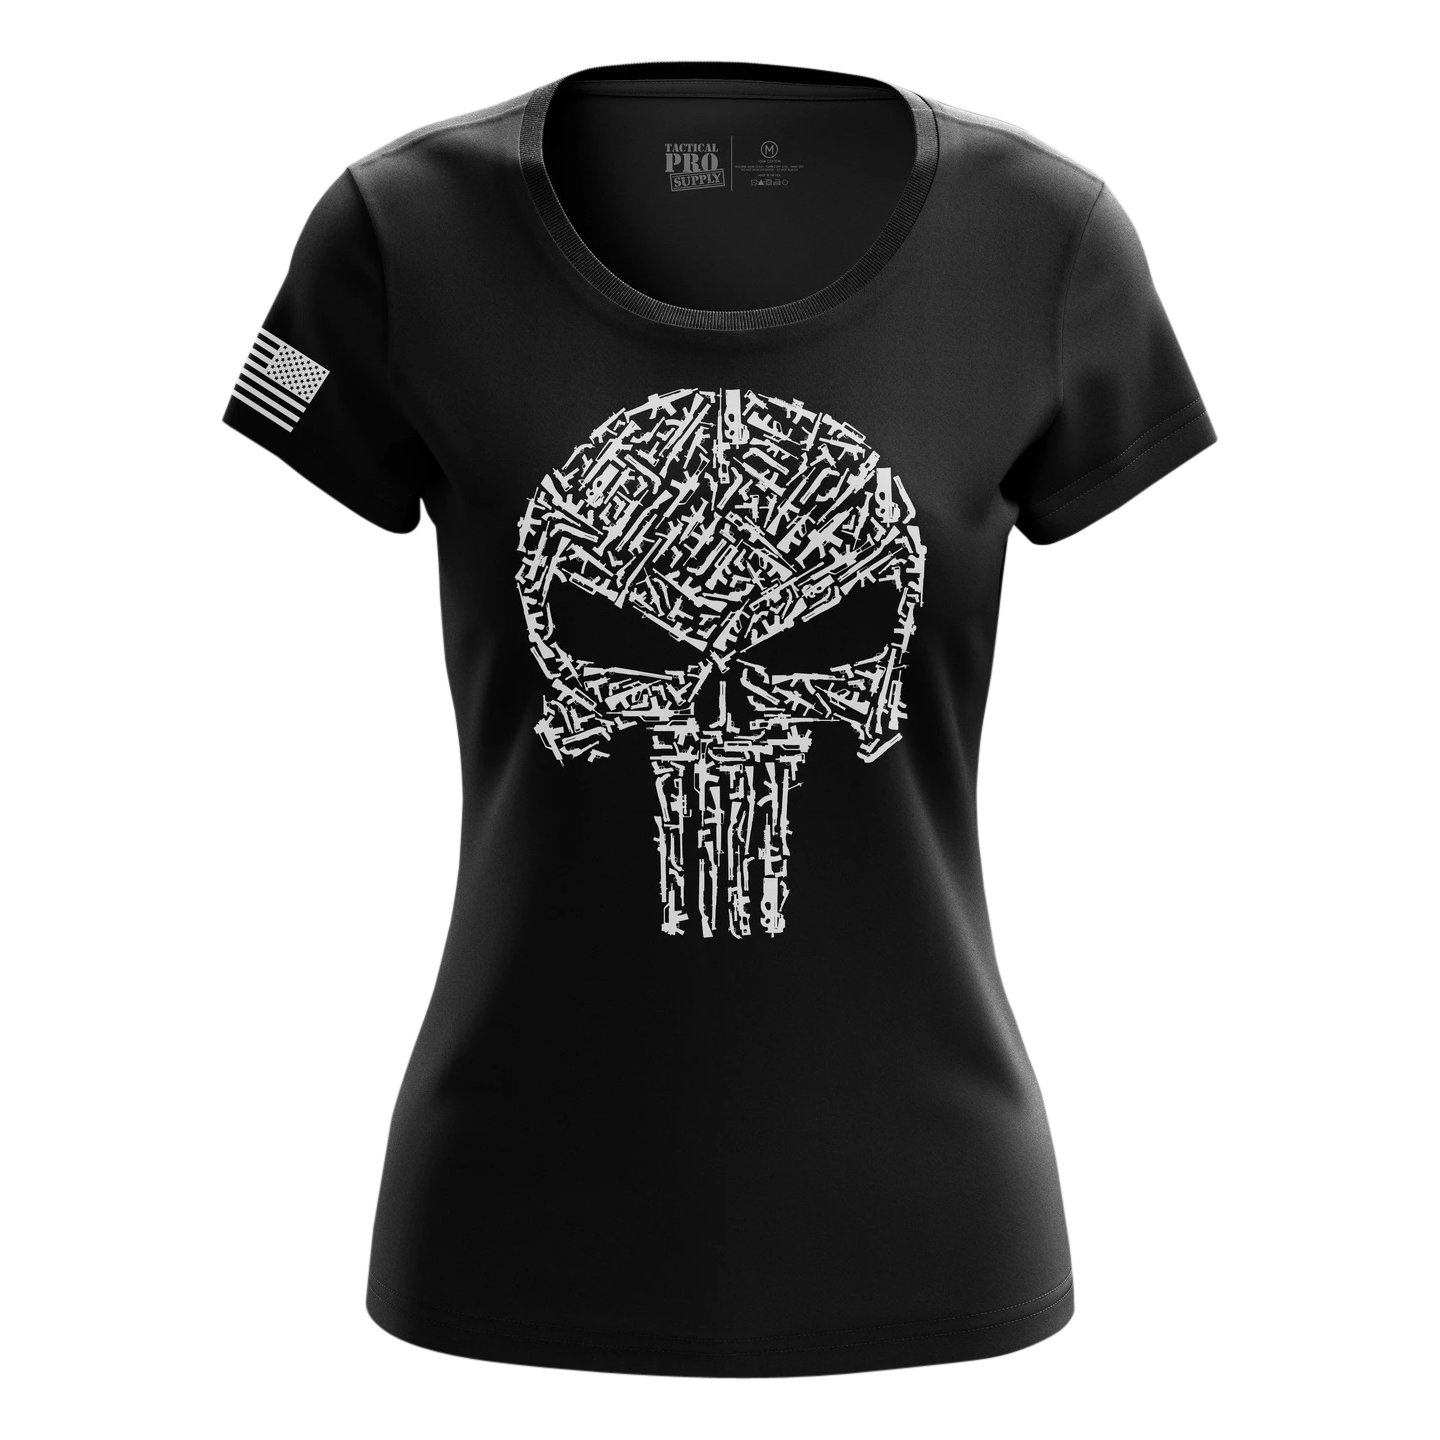 Women's Shirt - The Gunisher | Womens Tee